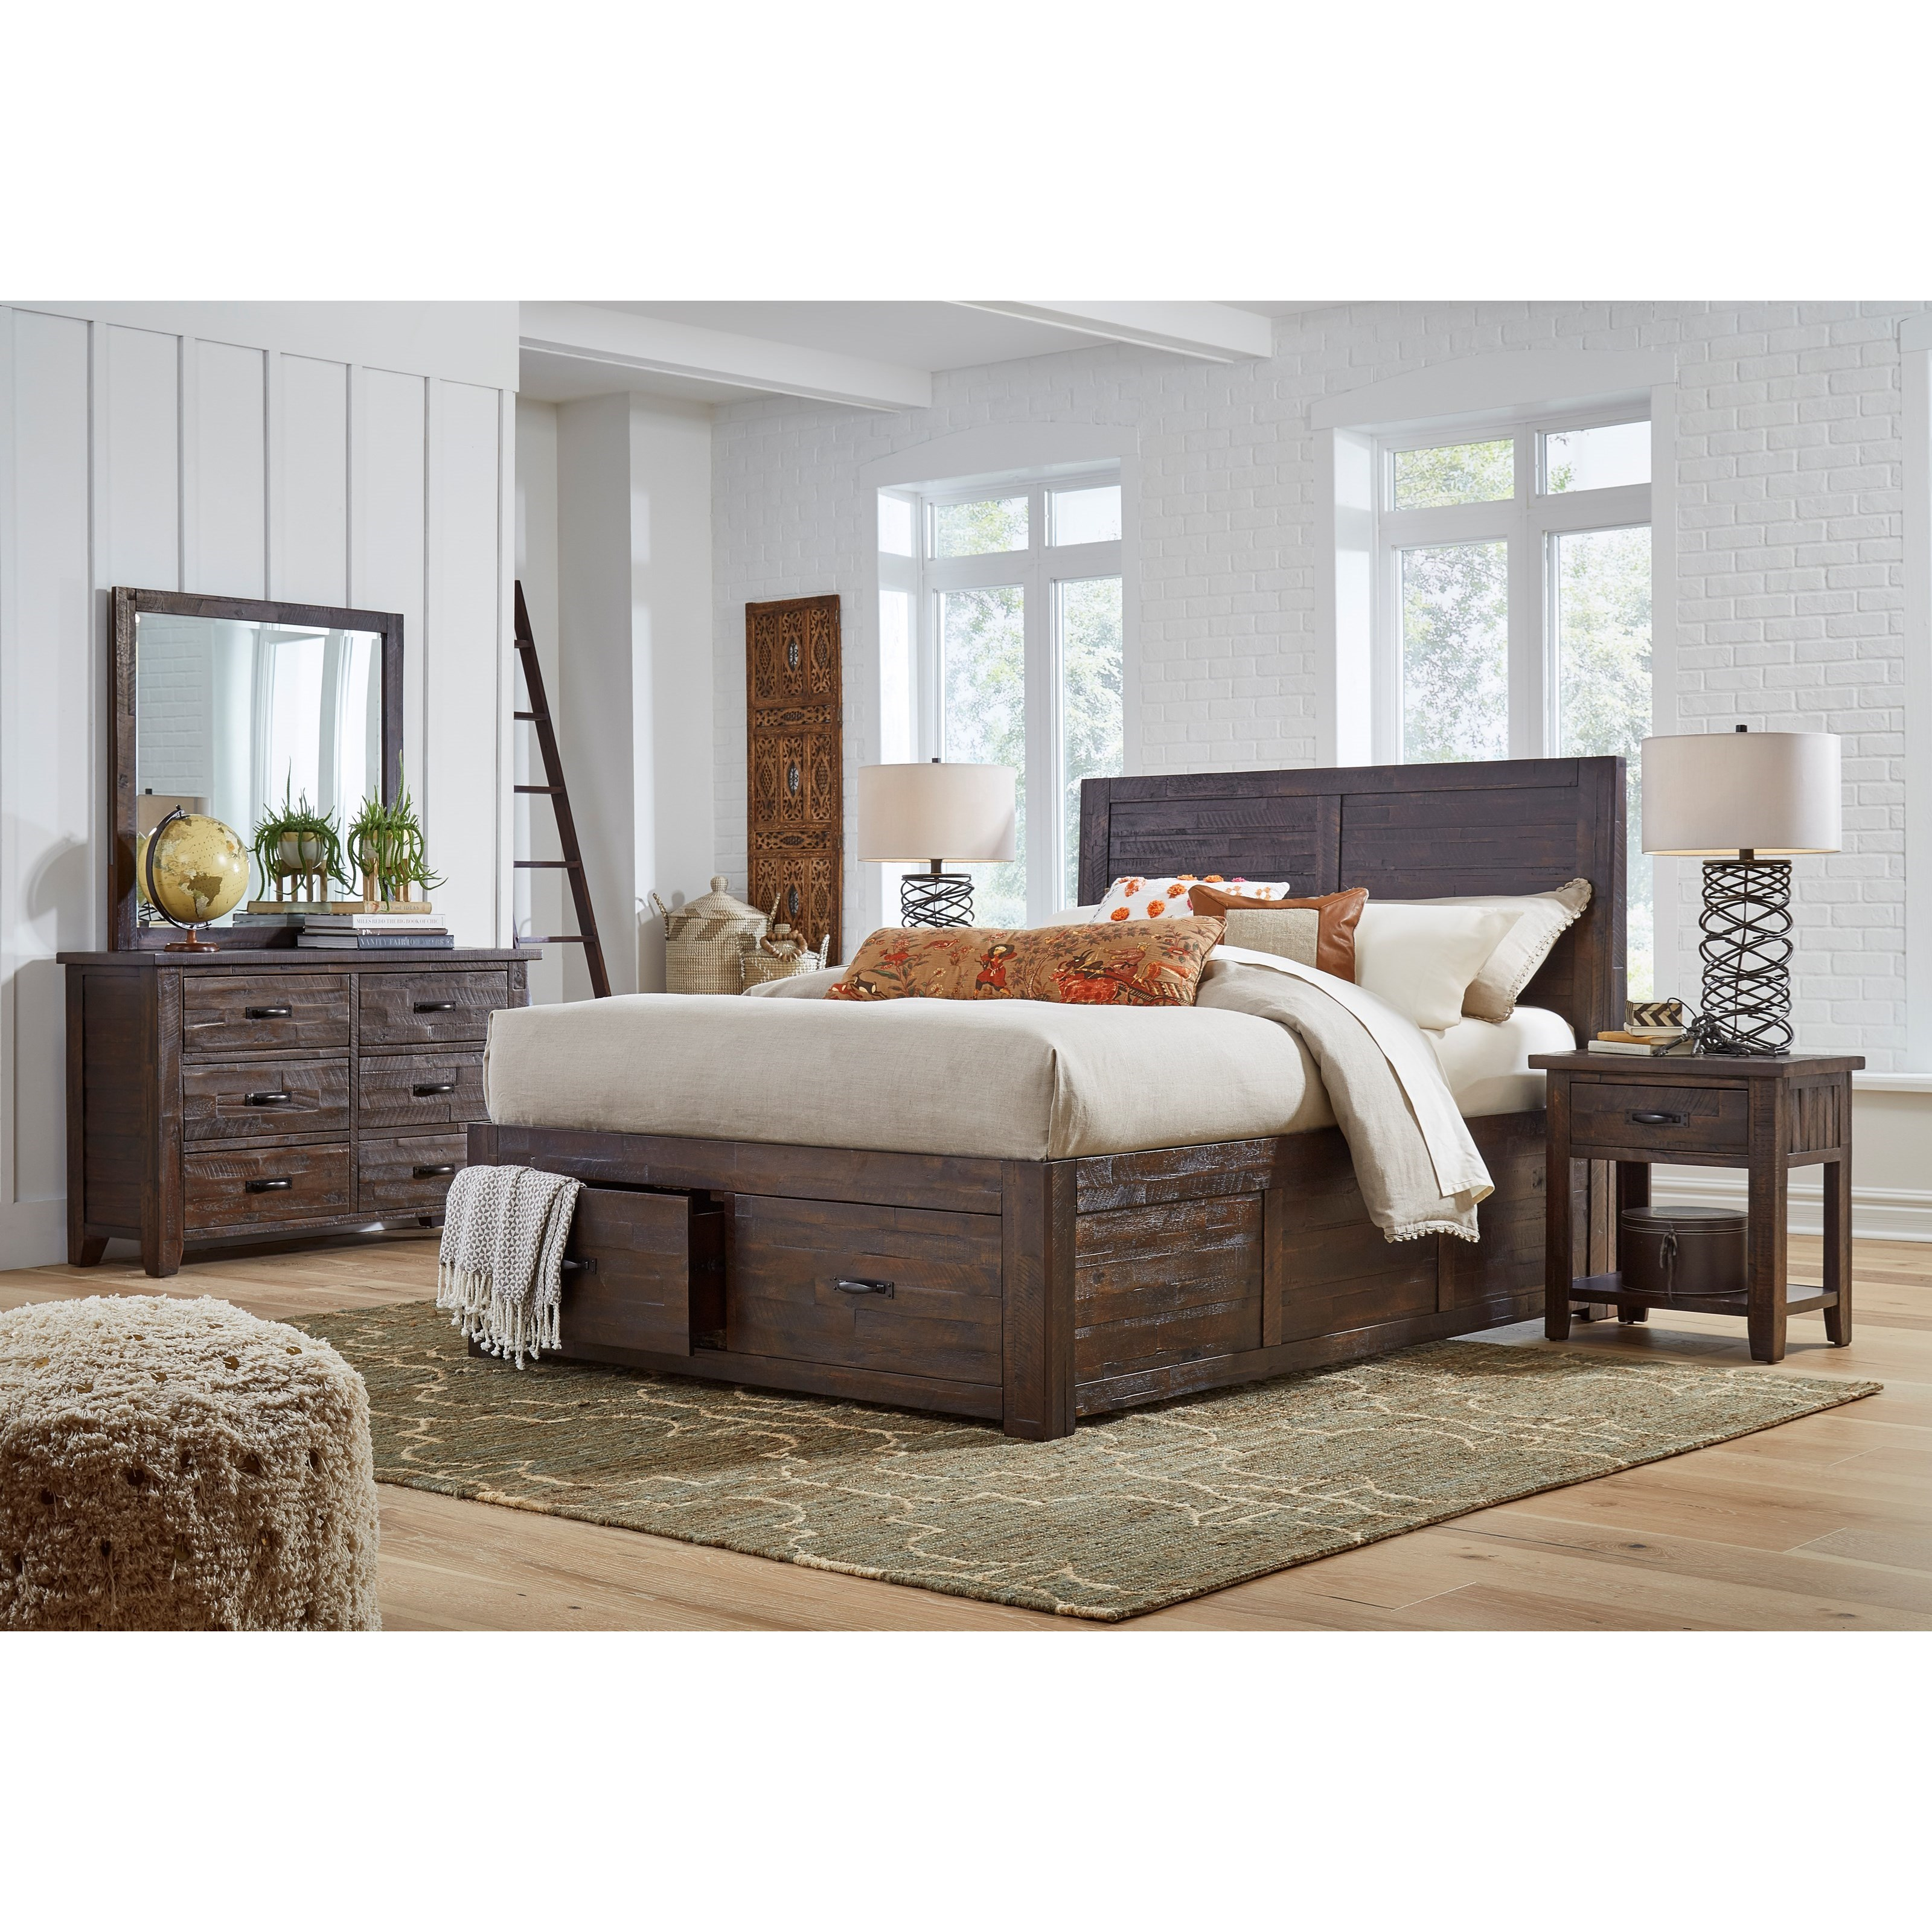 Jackson Lodge Queen Bedroom Group by Jofran at Stoney Creek Furniture